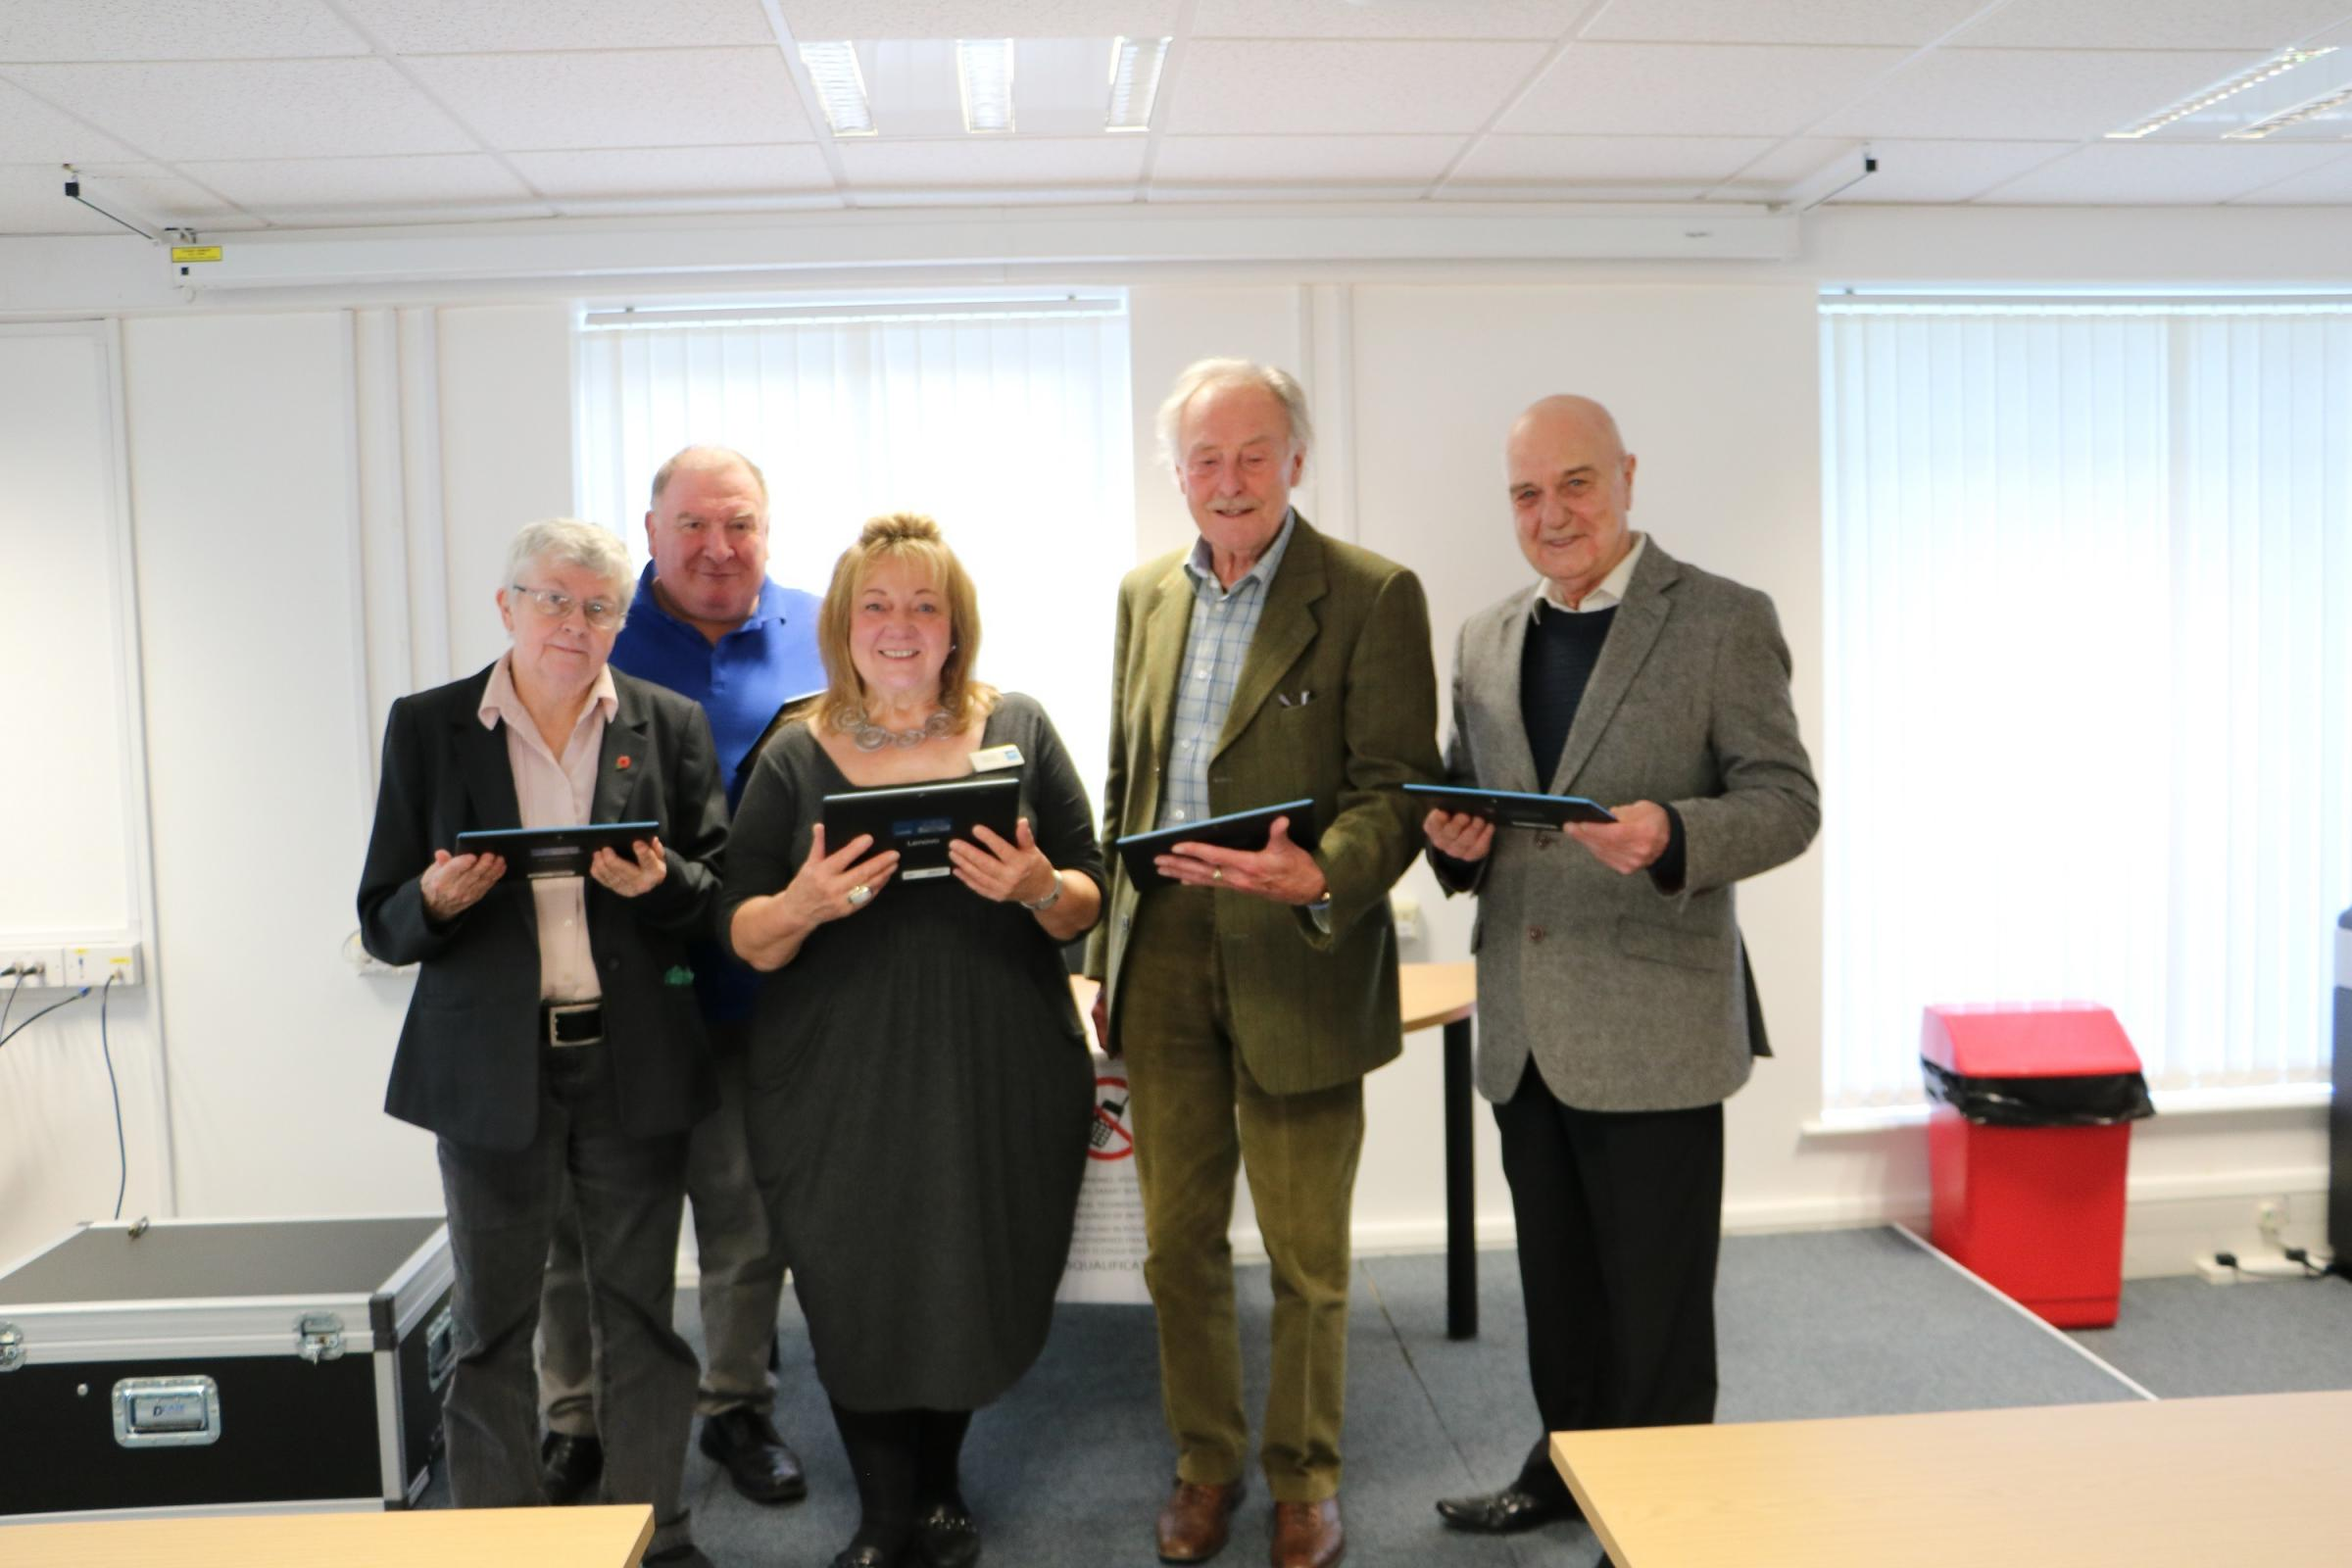 Allerdale councillors, from the left, Angela Kendall, Peter Kendall, Joan Ellis, Ron Munby and Len Davies